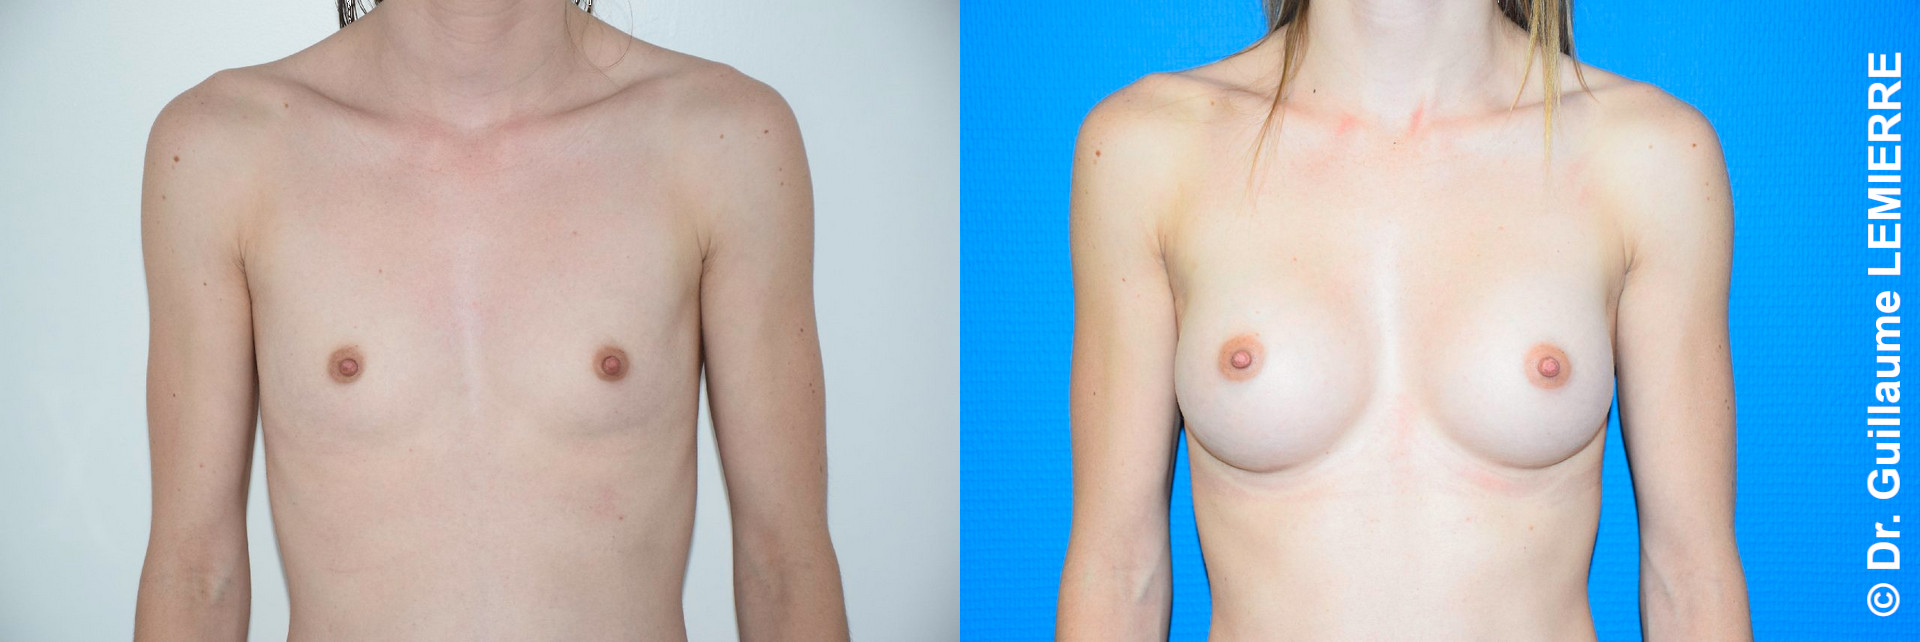 Breast implant before after exemple2